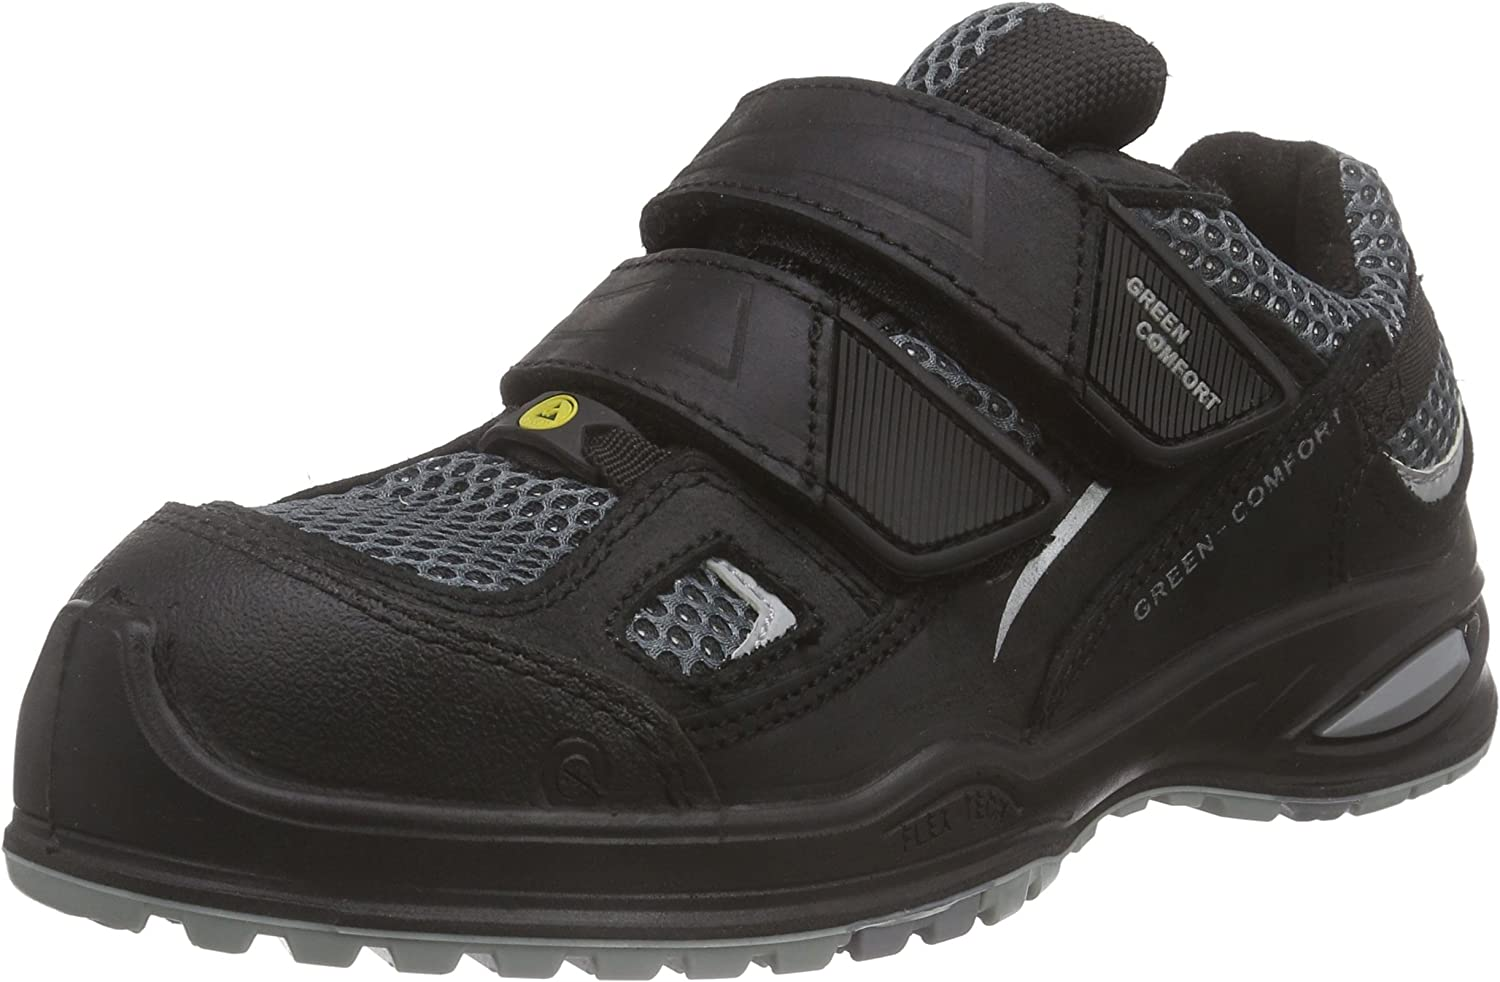 Sanita Unisex Adults' Millstone-ESD-s3 Velcro Leather shoes Safety